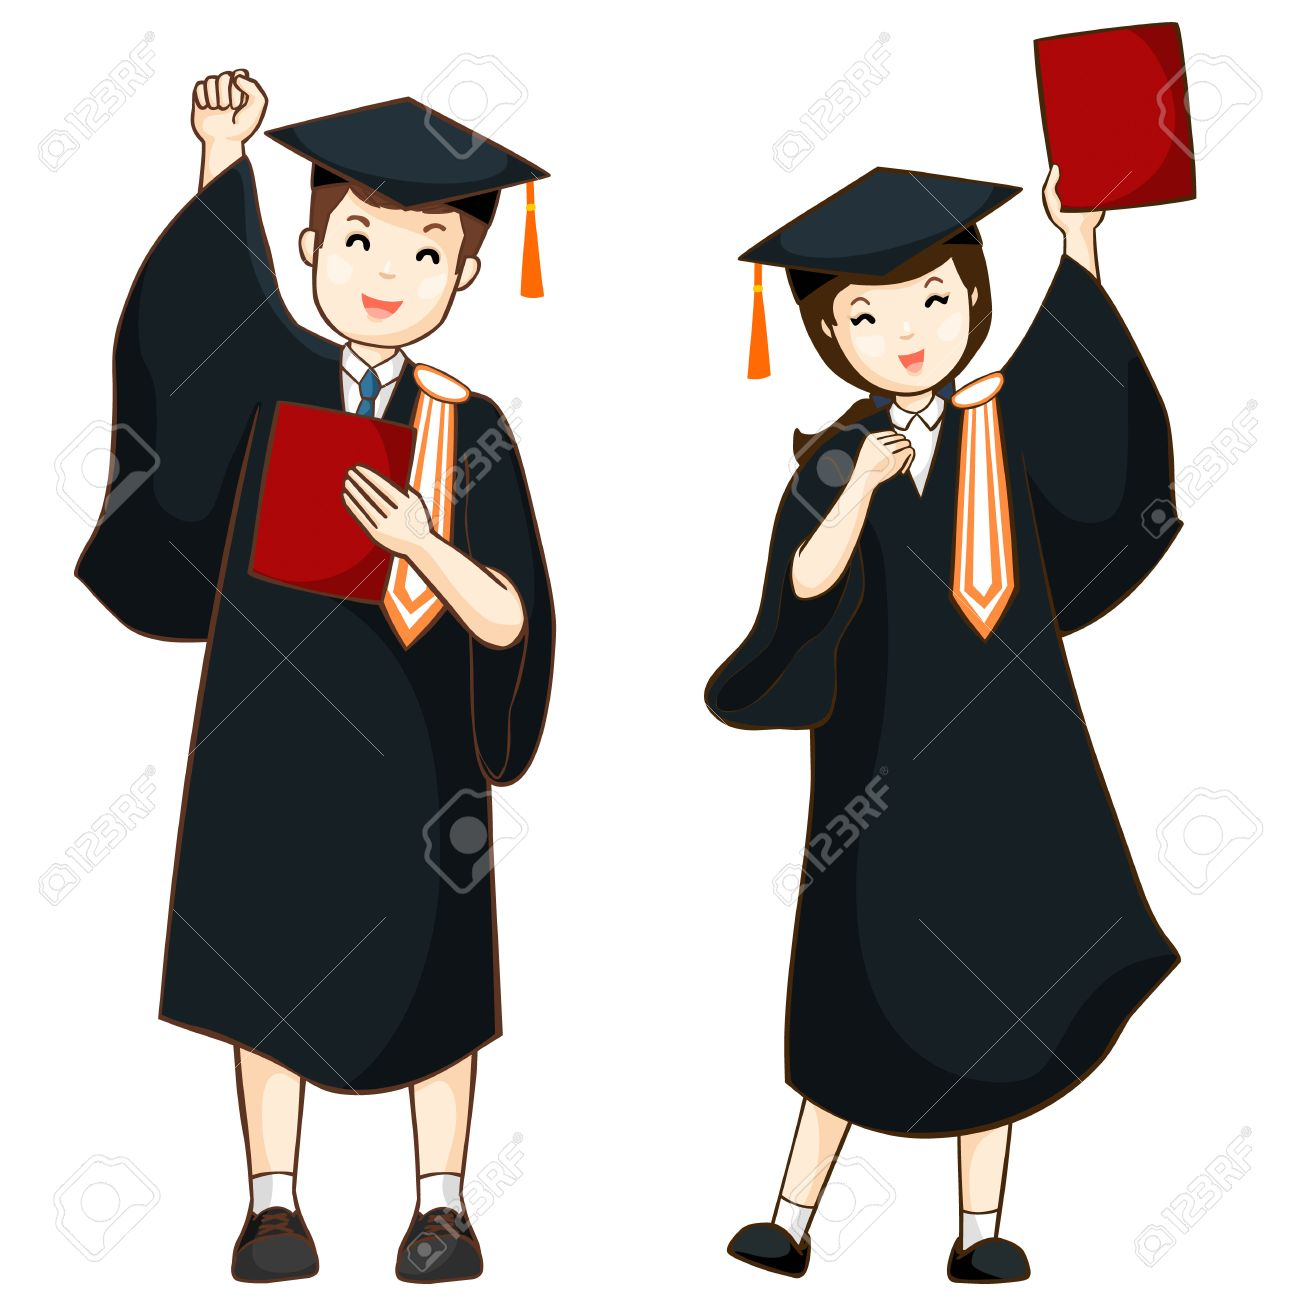 boy and girl graduate from high school illustration.